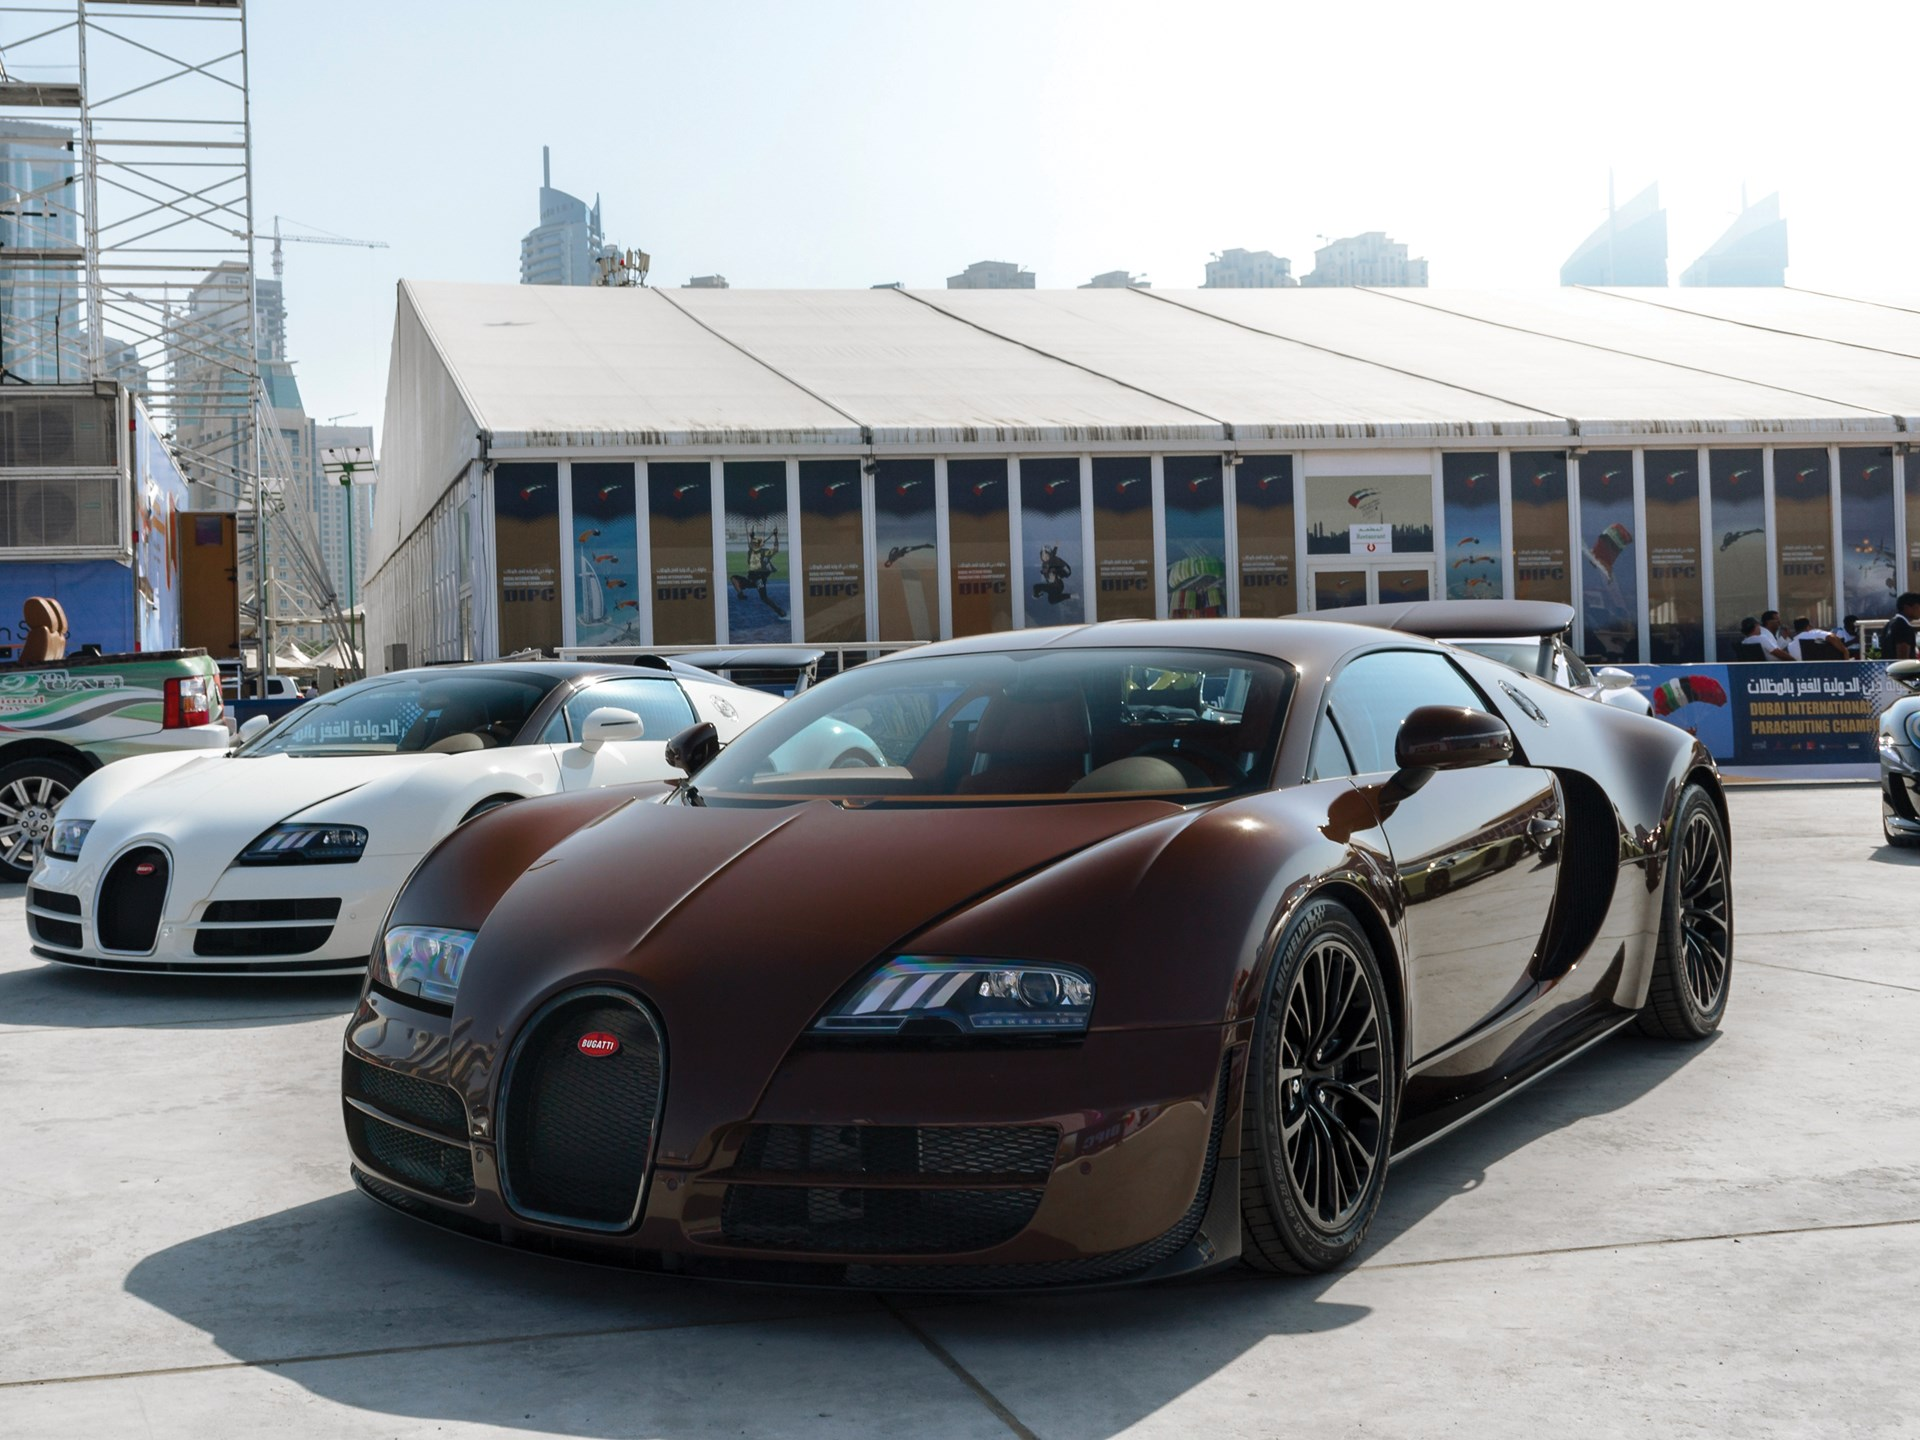 The Veyron as seen at the Dubai International Parachuting Championship in December of 2013.